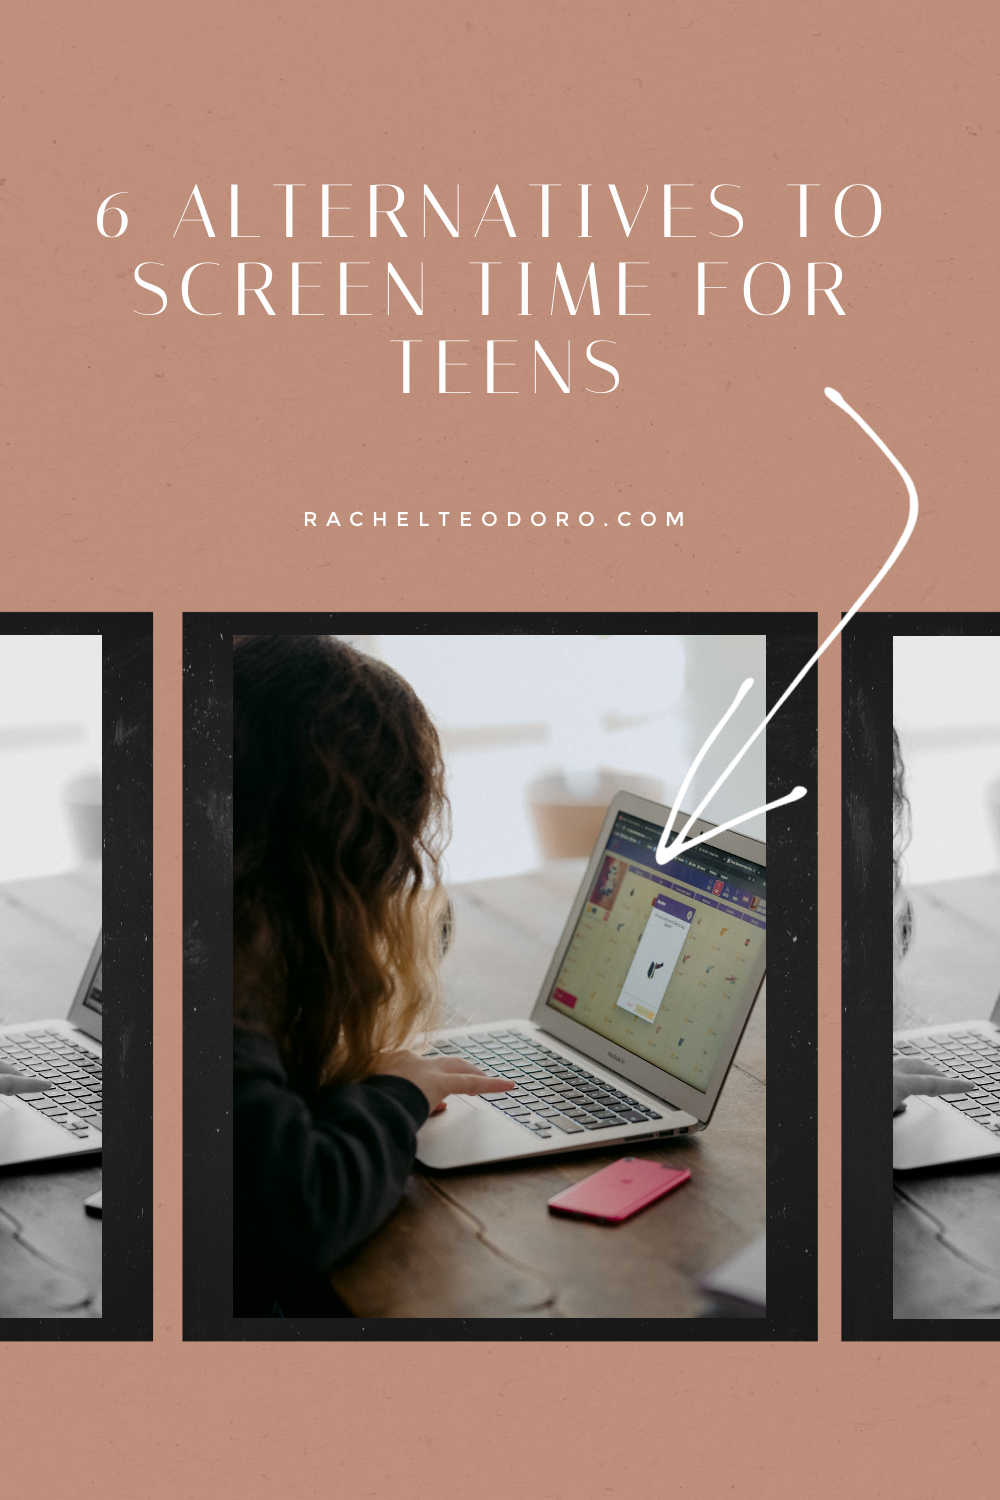 screen fatigue alternatives for screen time for teens